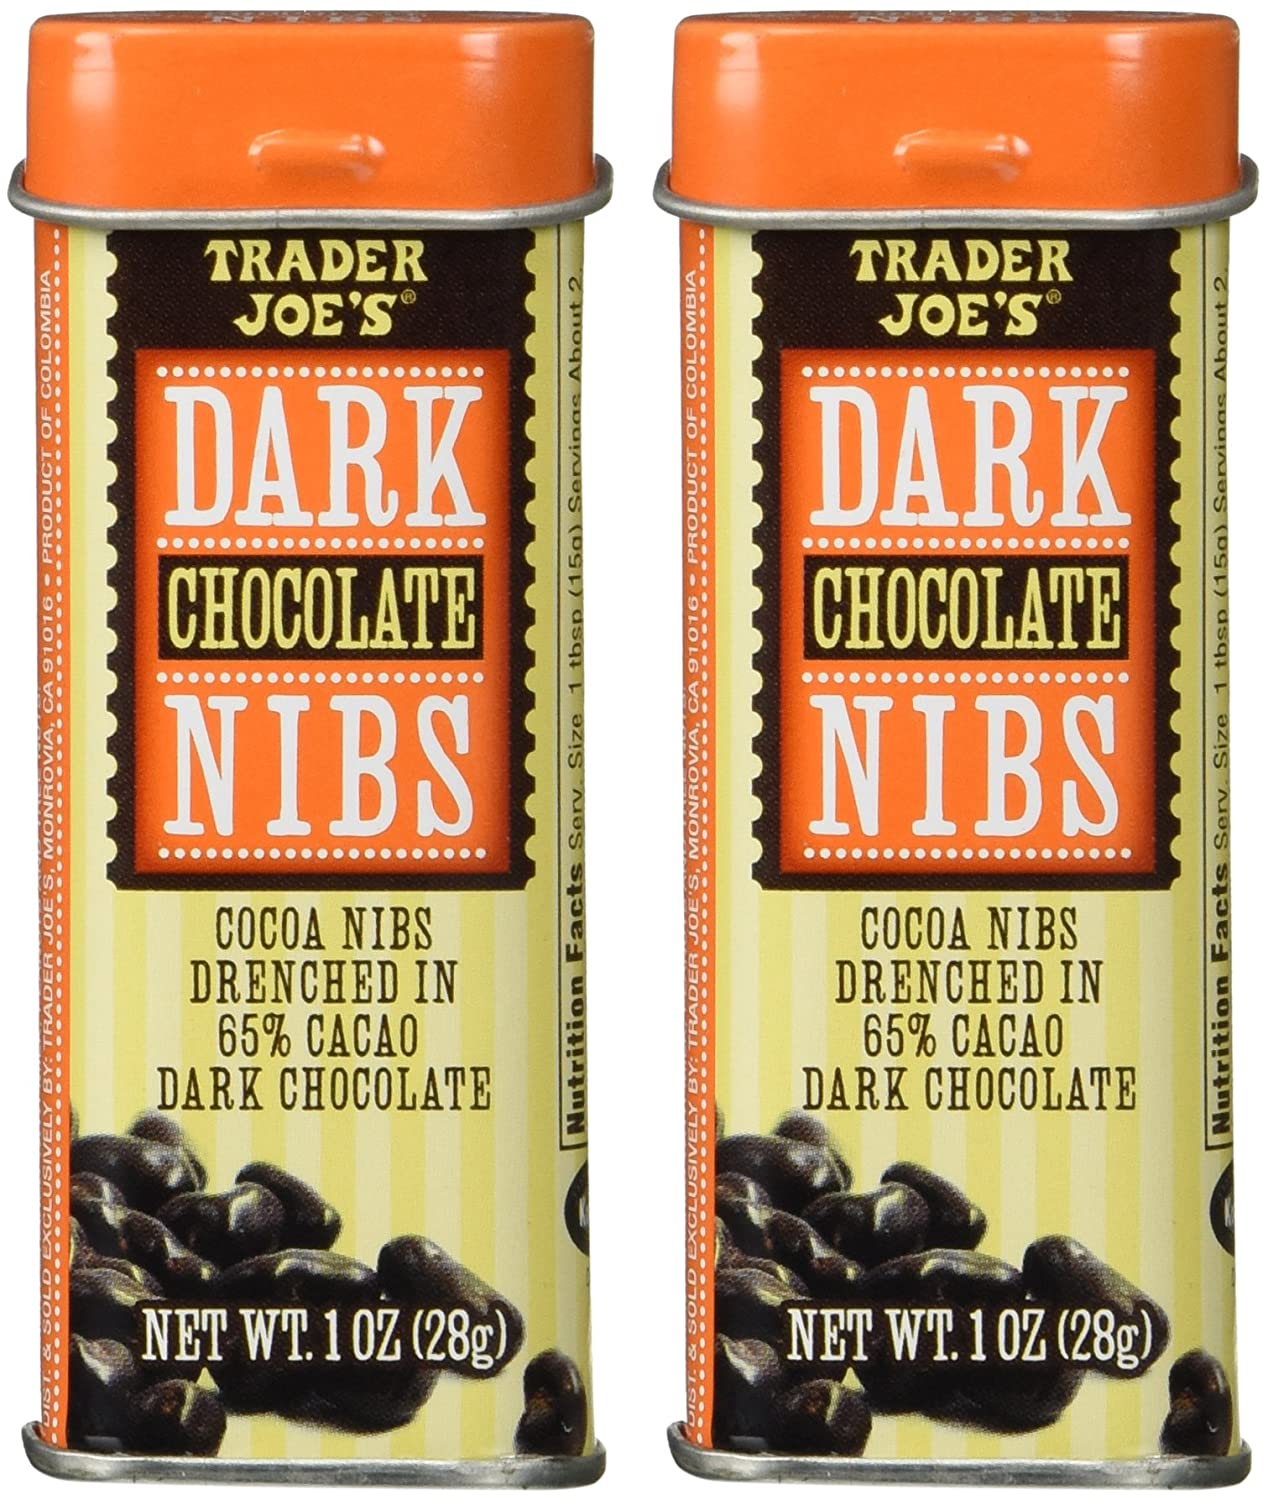 Amazon.com : Trader Joe's Dark Chocolate Nibs Cocoa Nibs Drenched ...